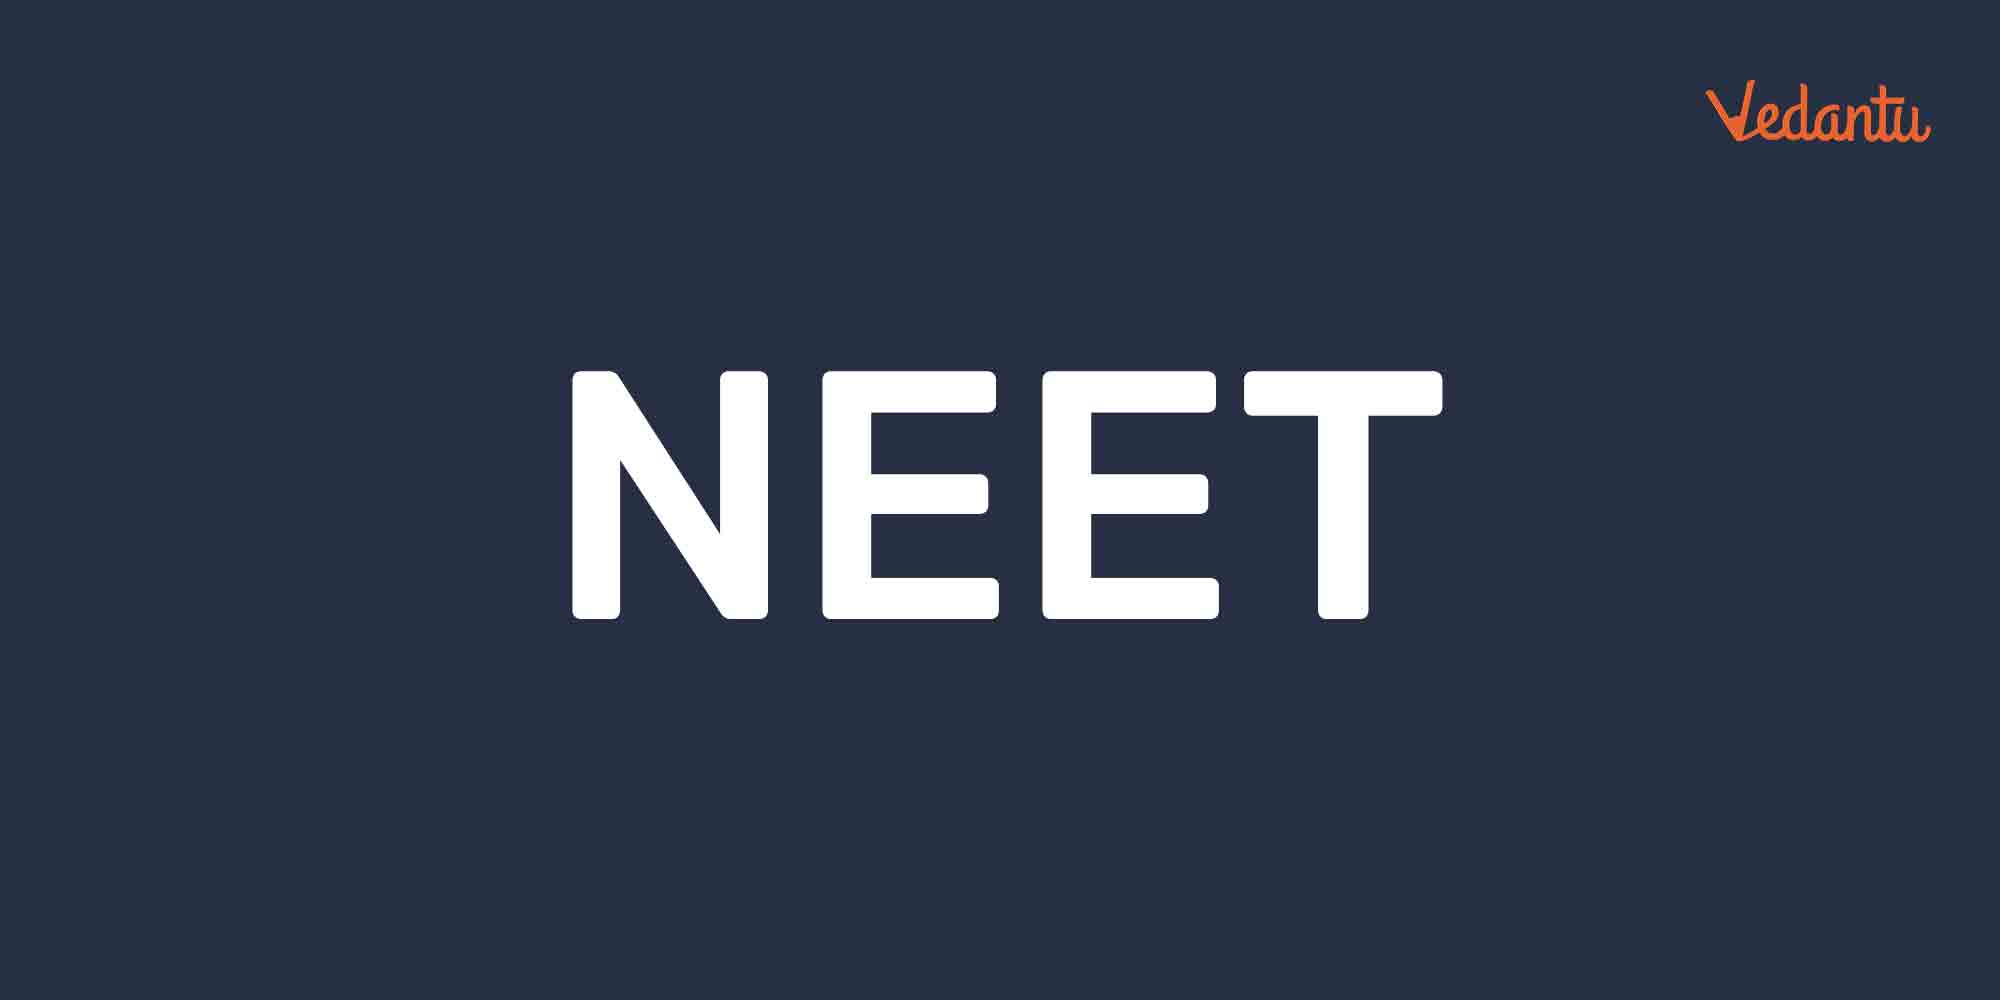 How to Study for NEET When Only 100 Days are Left?